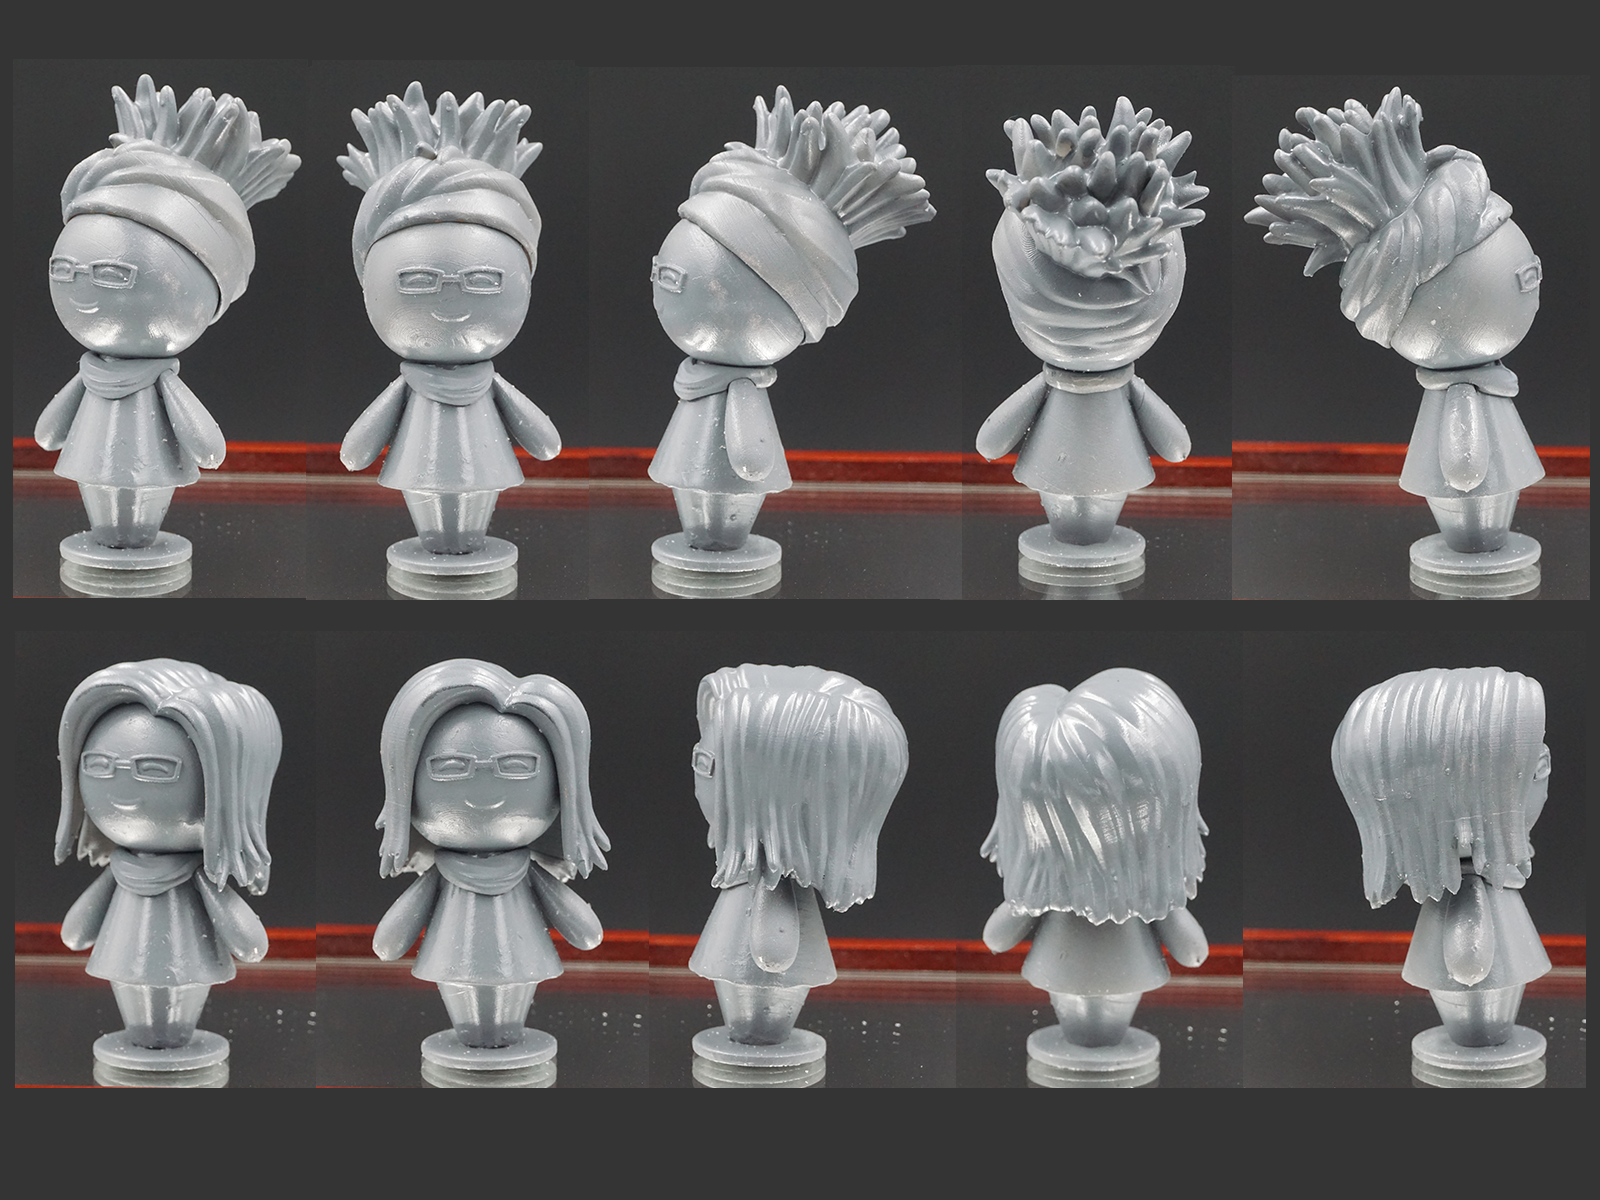 Turnaround of Each 3d Print Character